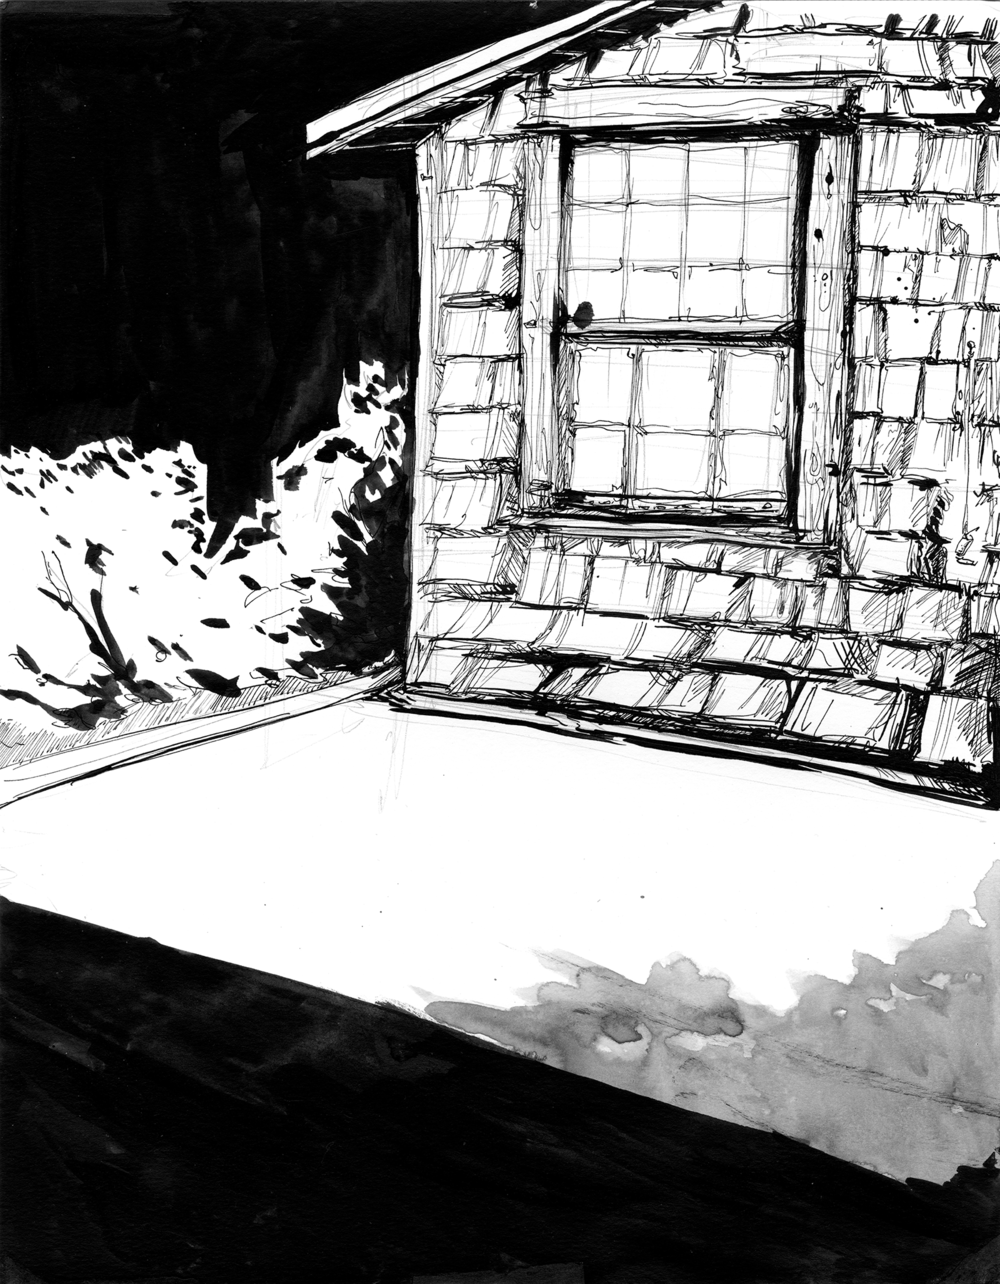 CapeCod_MA_C-ScapeDuneShack_Nib_and_Brush_with_Ink.png